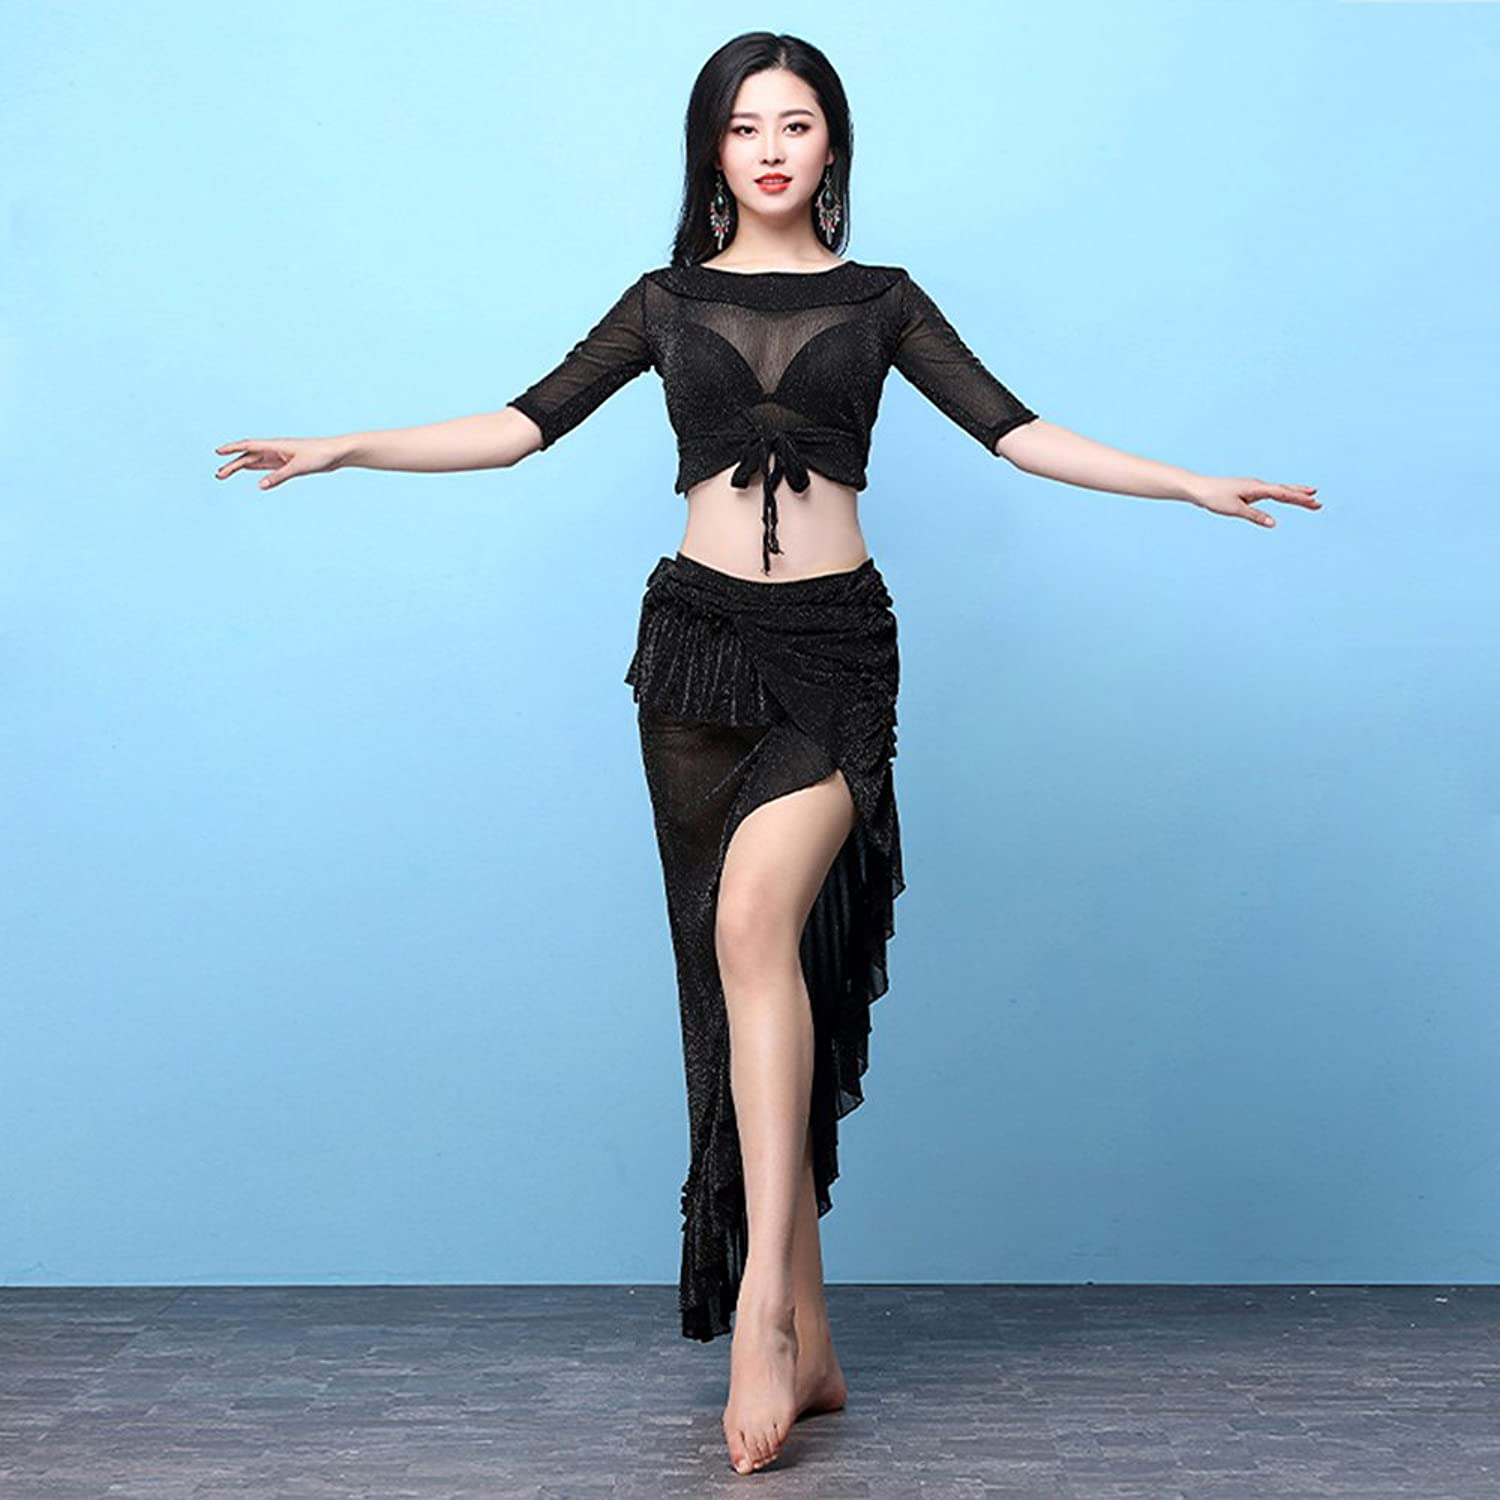 Xueyanwei Professional Lady Belly Dance Costumes Indian Dance Dress Exercise Clothes Dance Competition Performance Dress